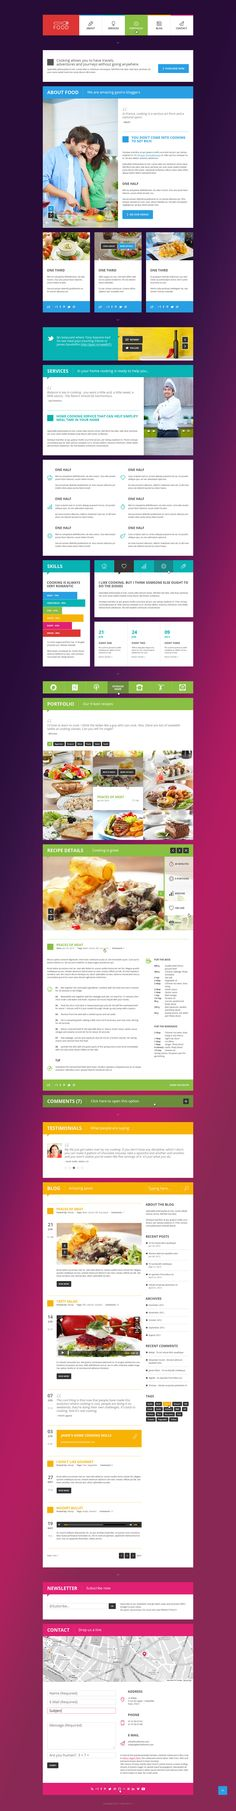 Food - Metro style Food & Restaurant PSD Single Page.  Home.